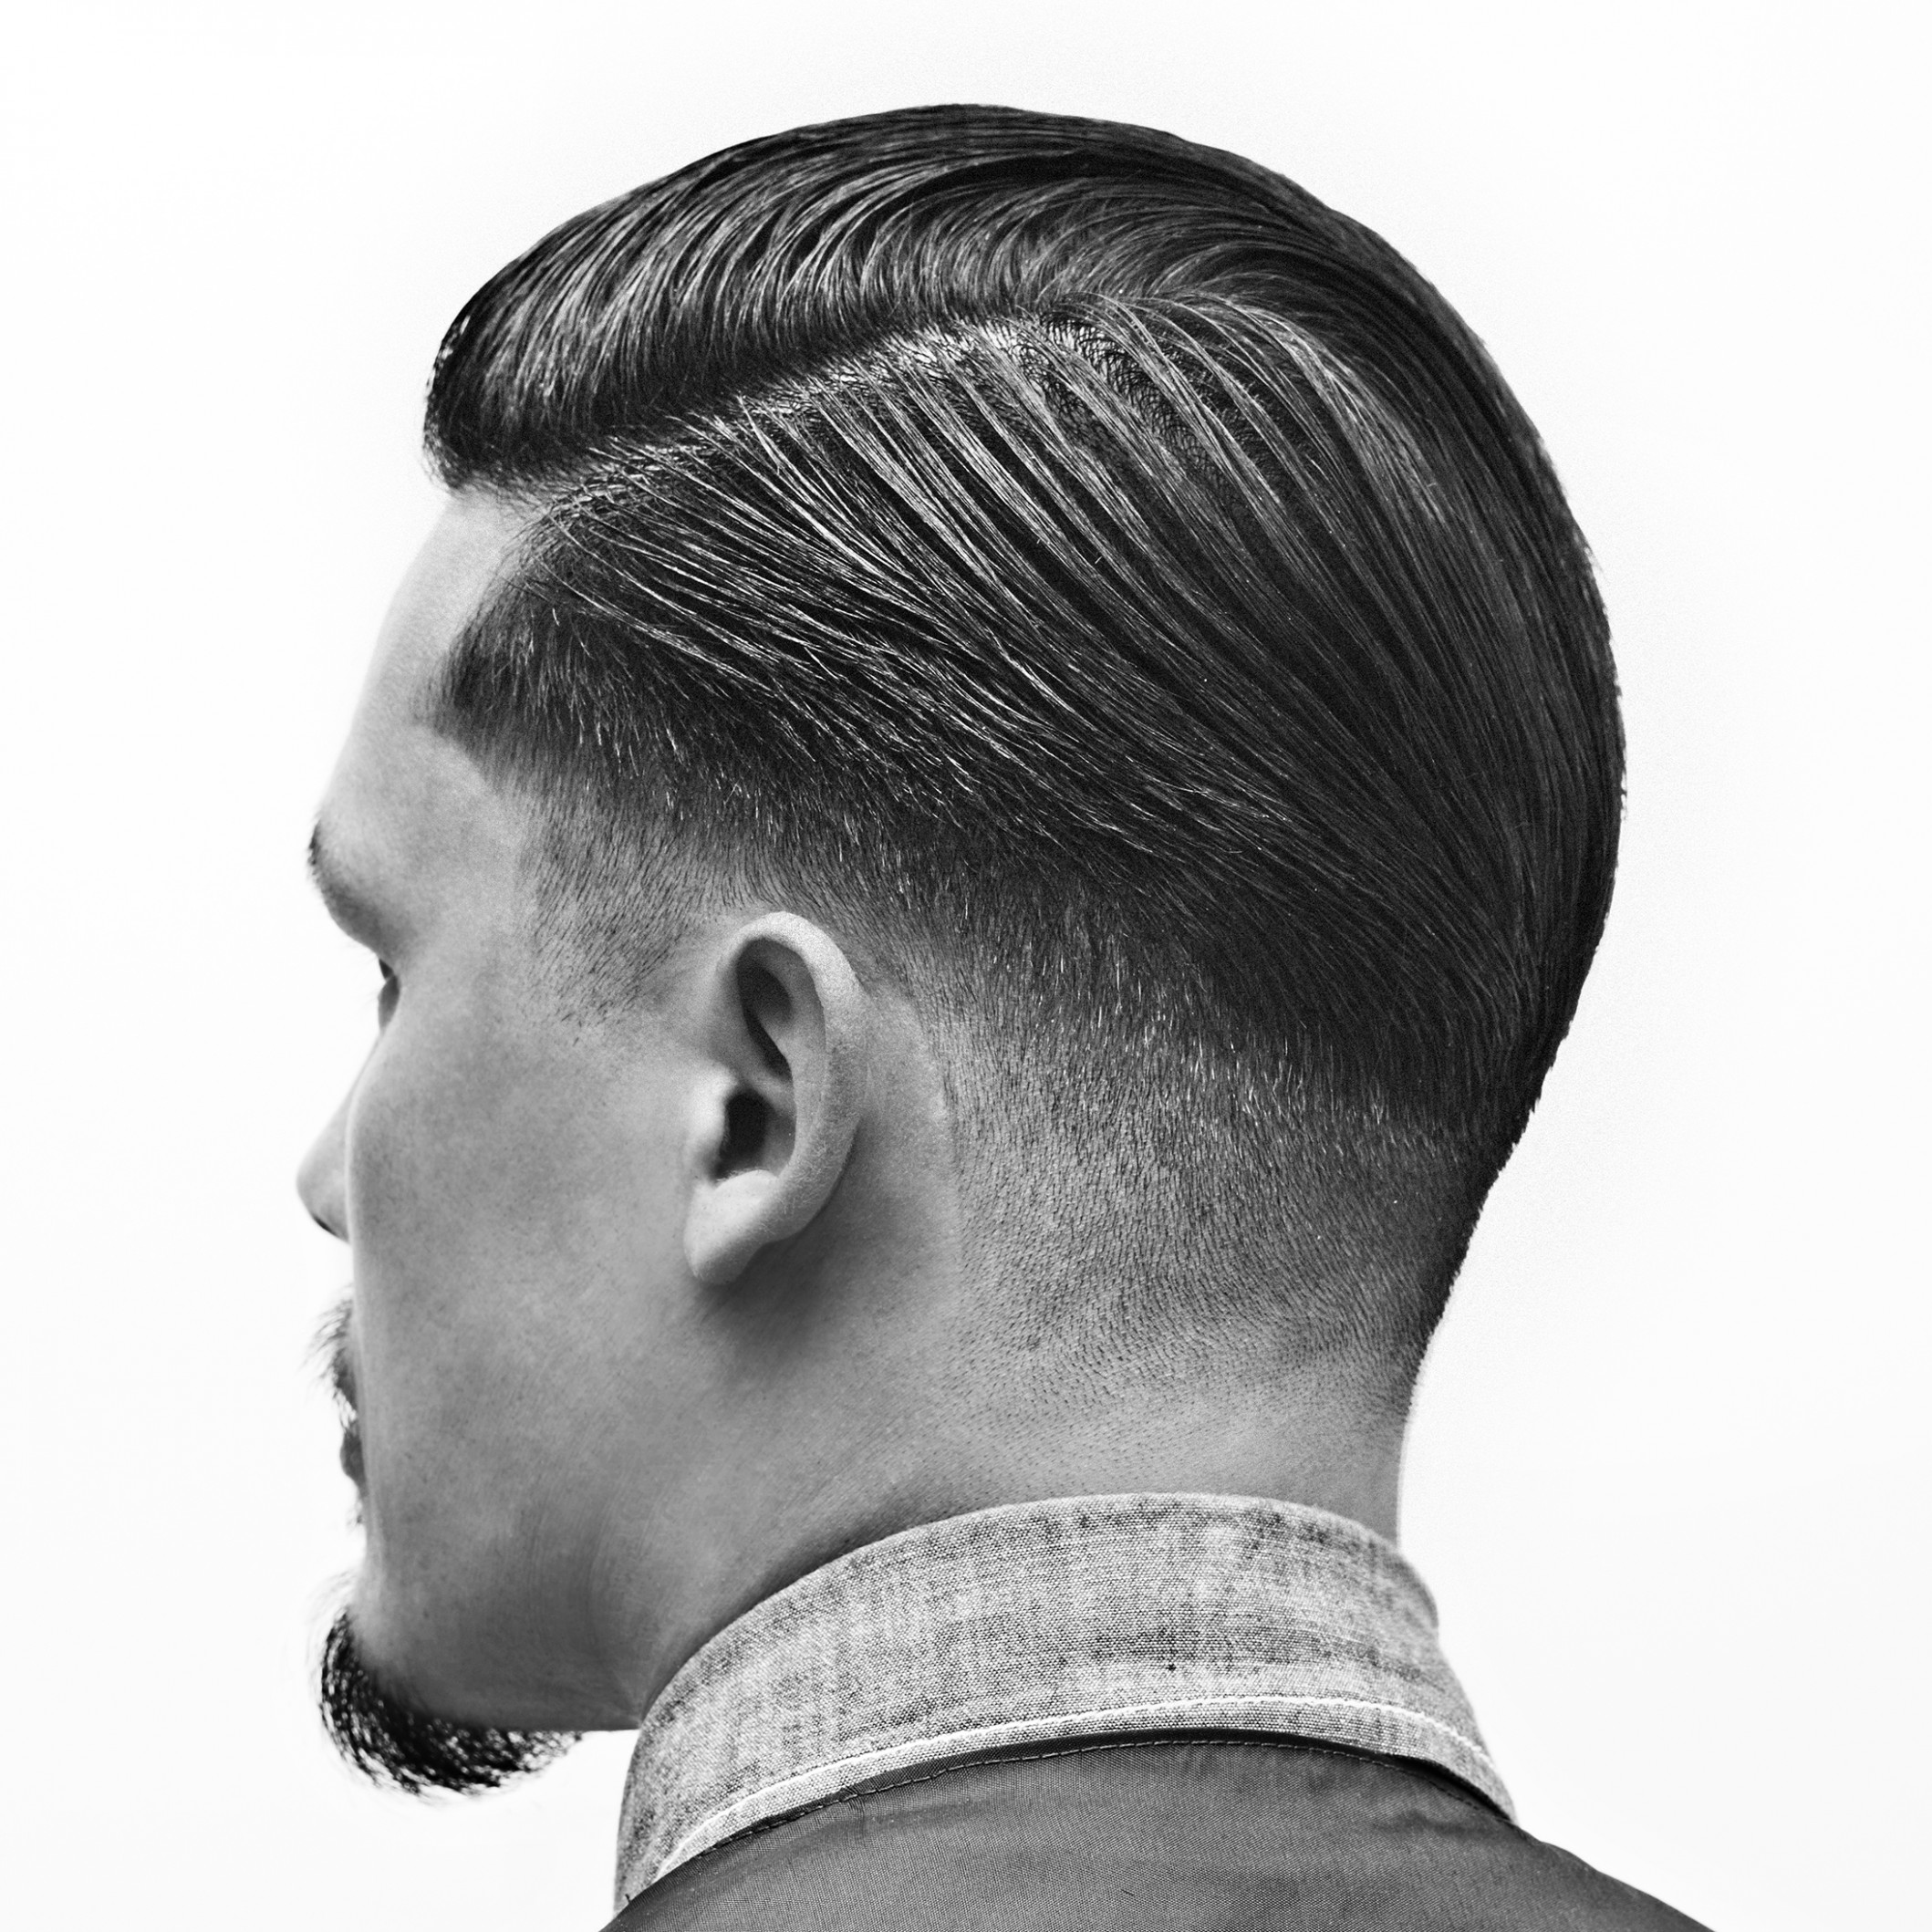 Get the low fade pompadour look | reuzel pomade low fade pompadour